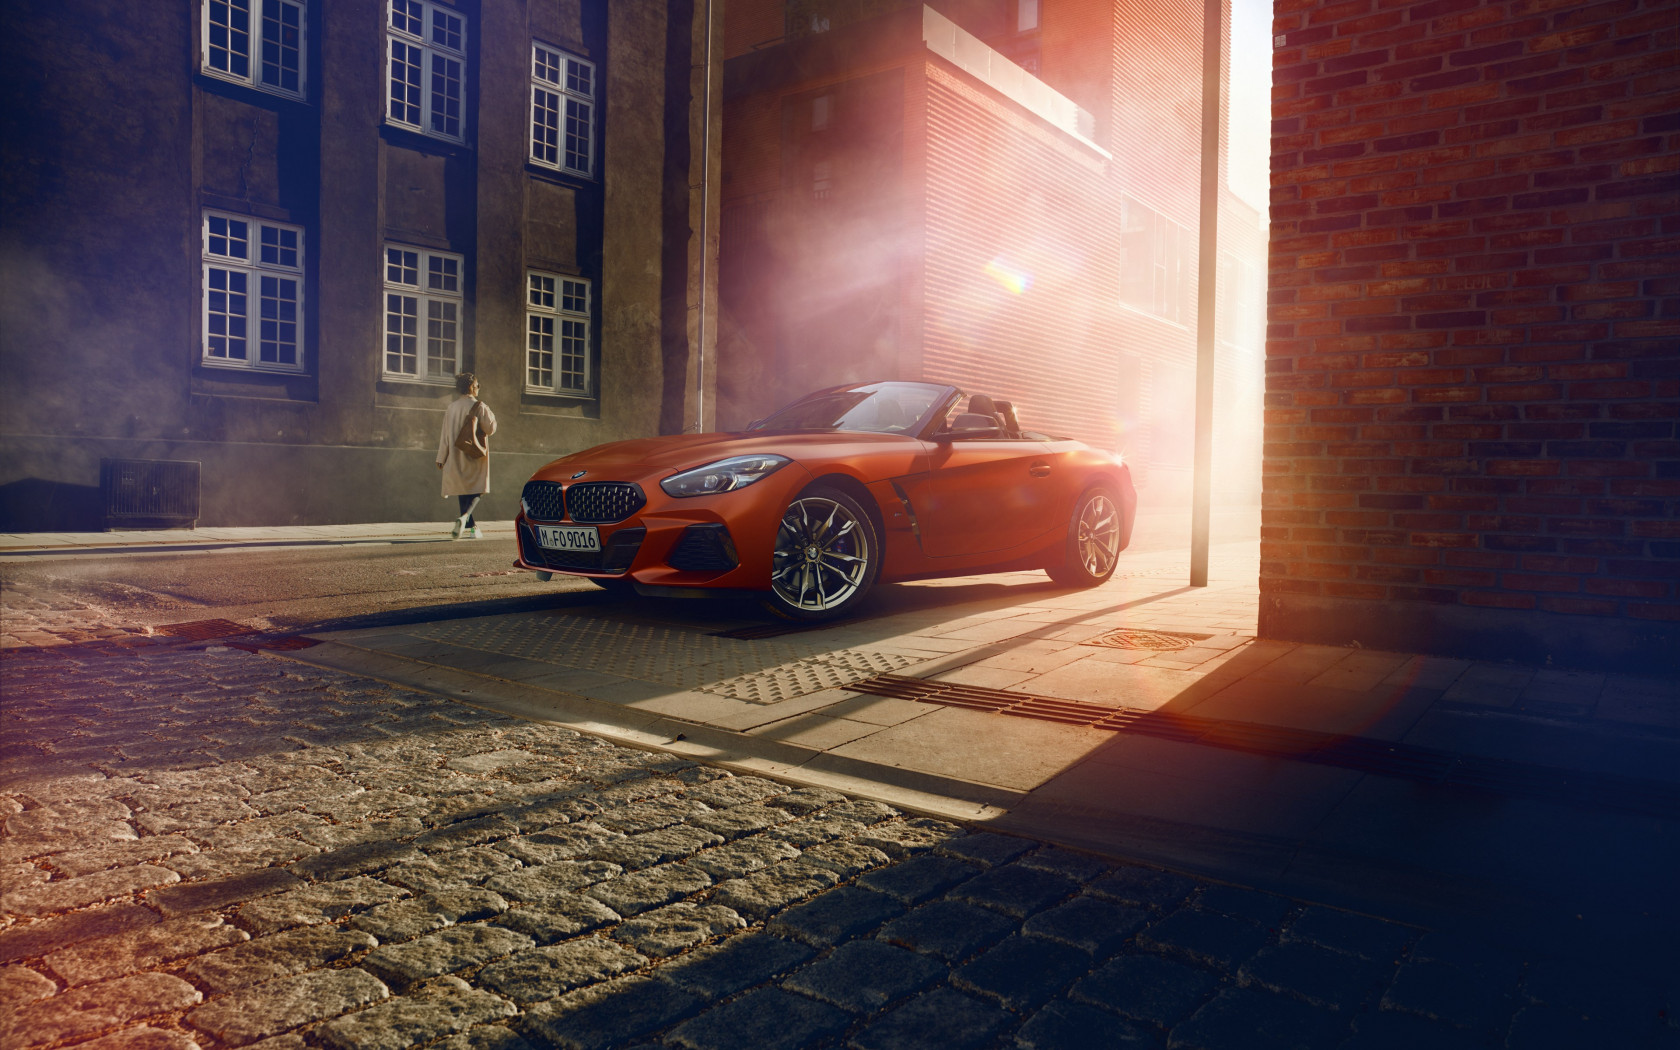 BMW Z4 2019 wallpaper 1680x1050